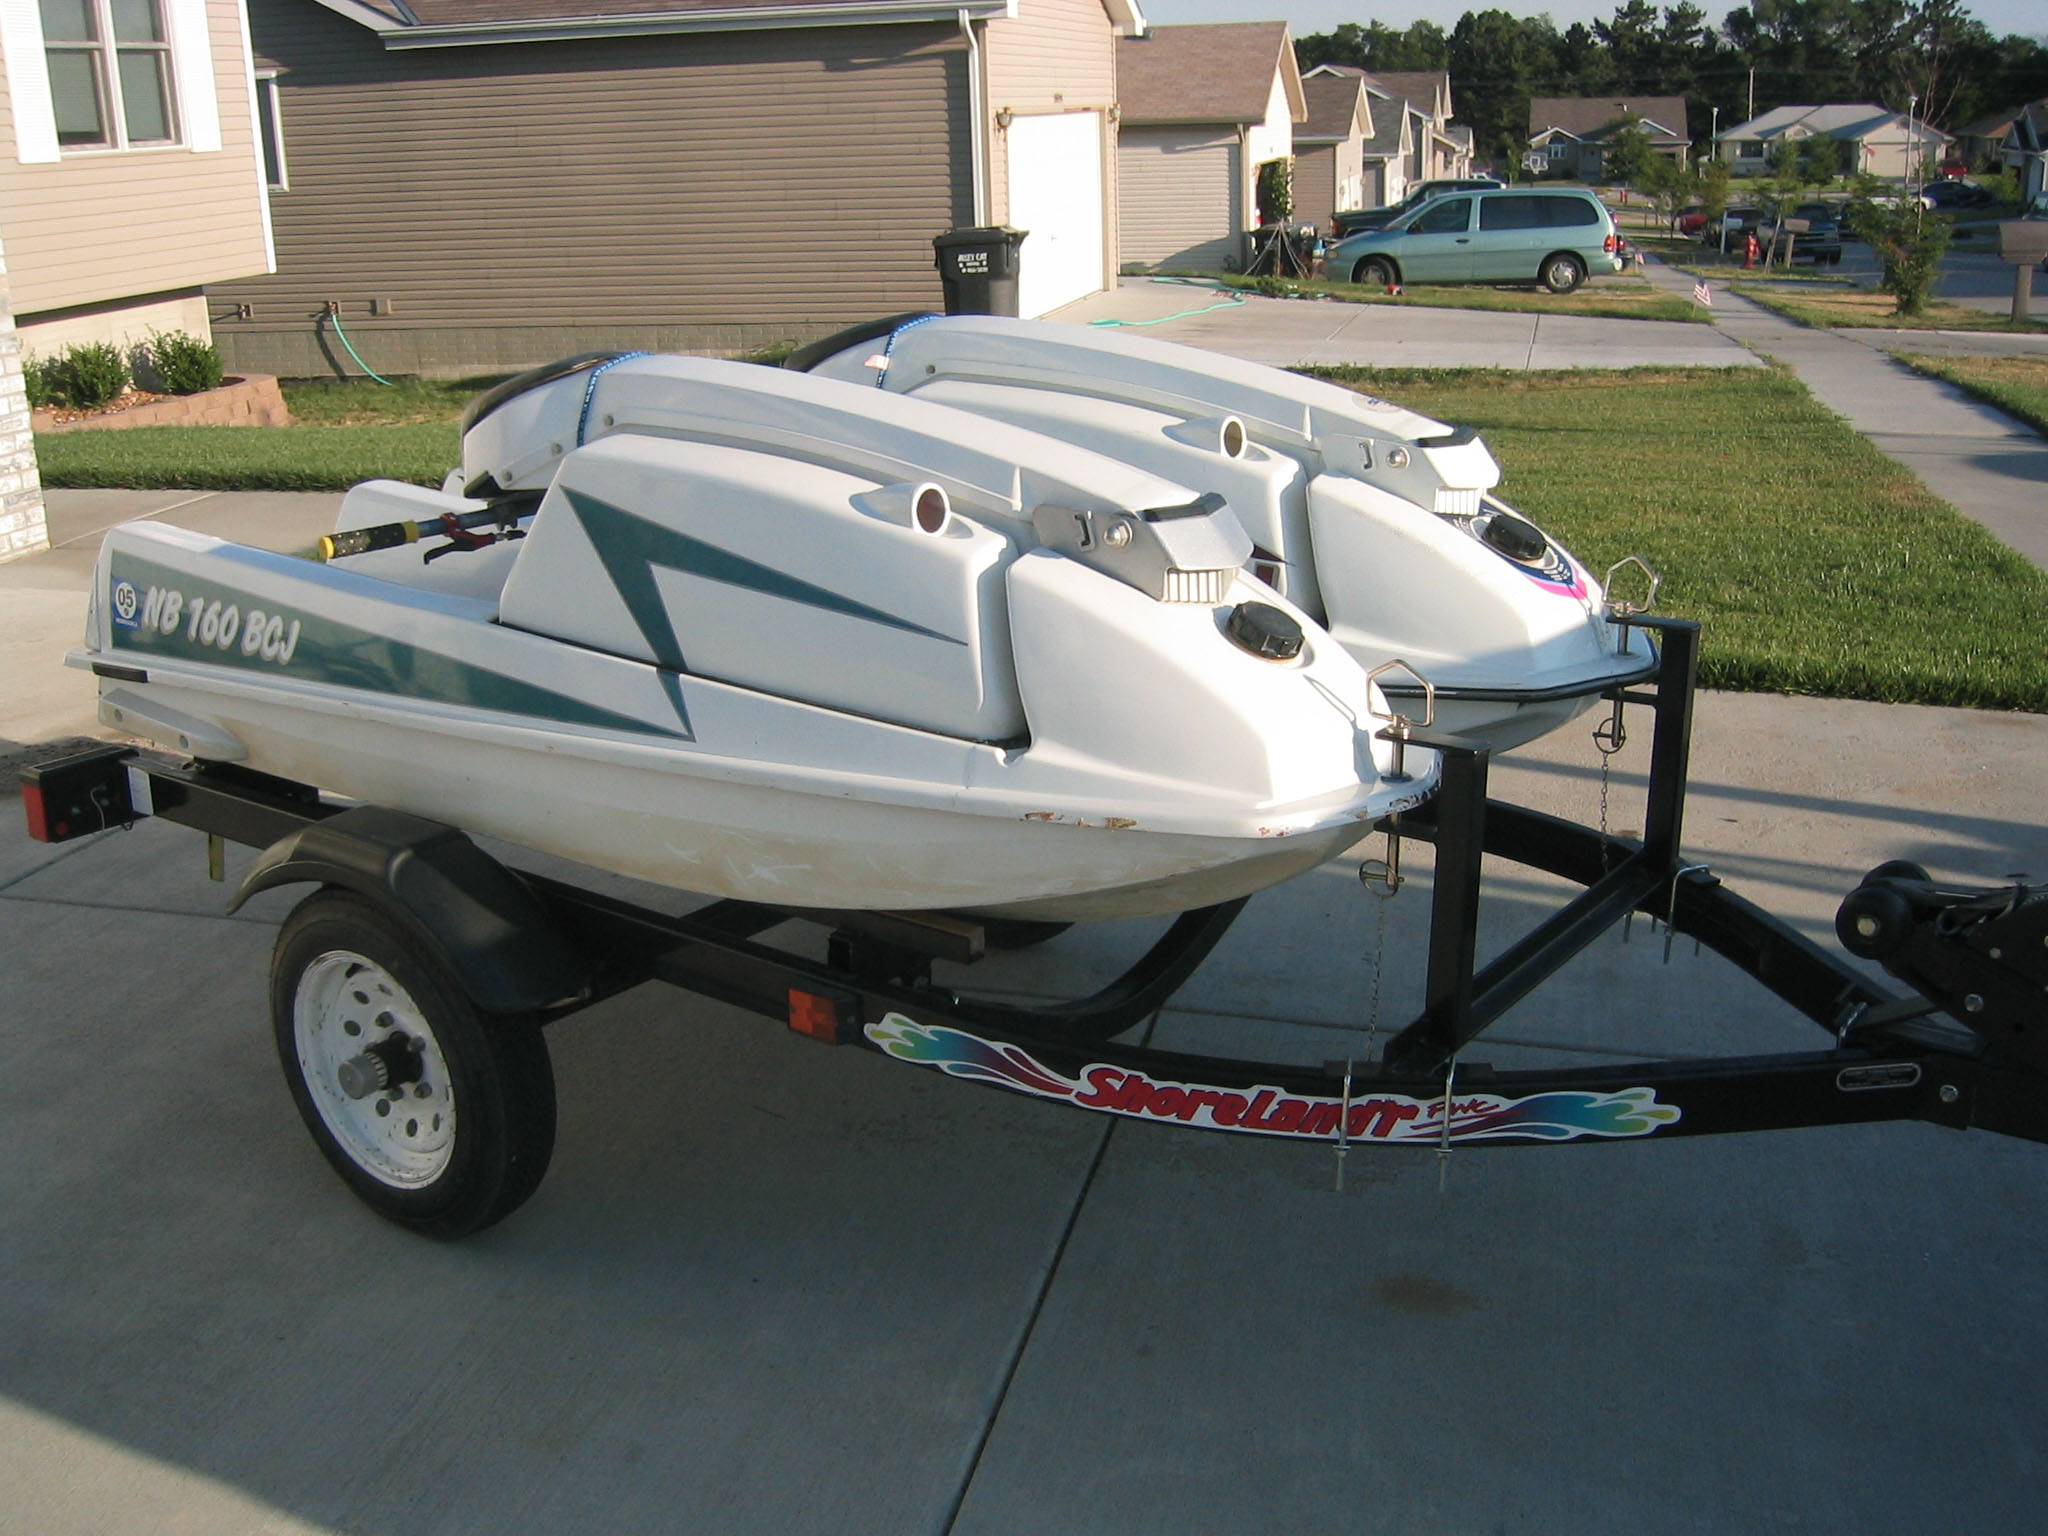 Pictures of the front mount on your jet ski trailers